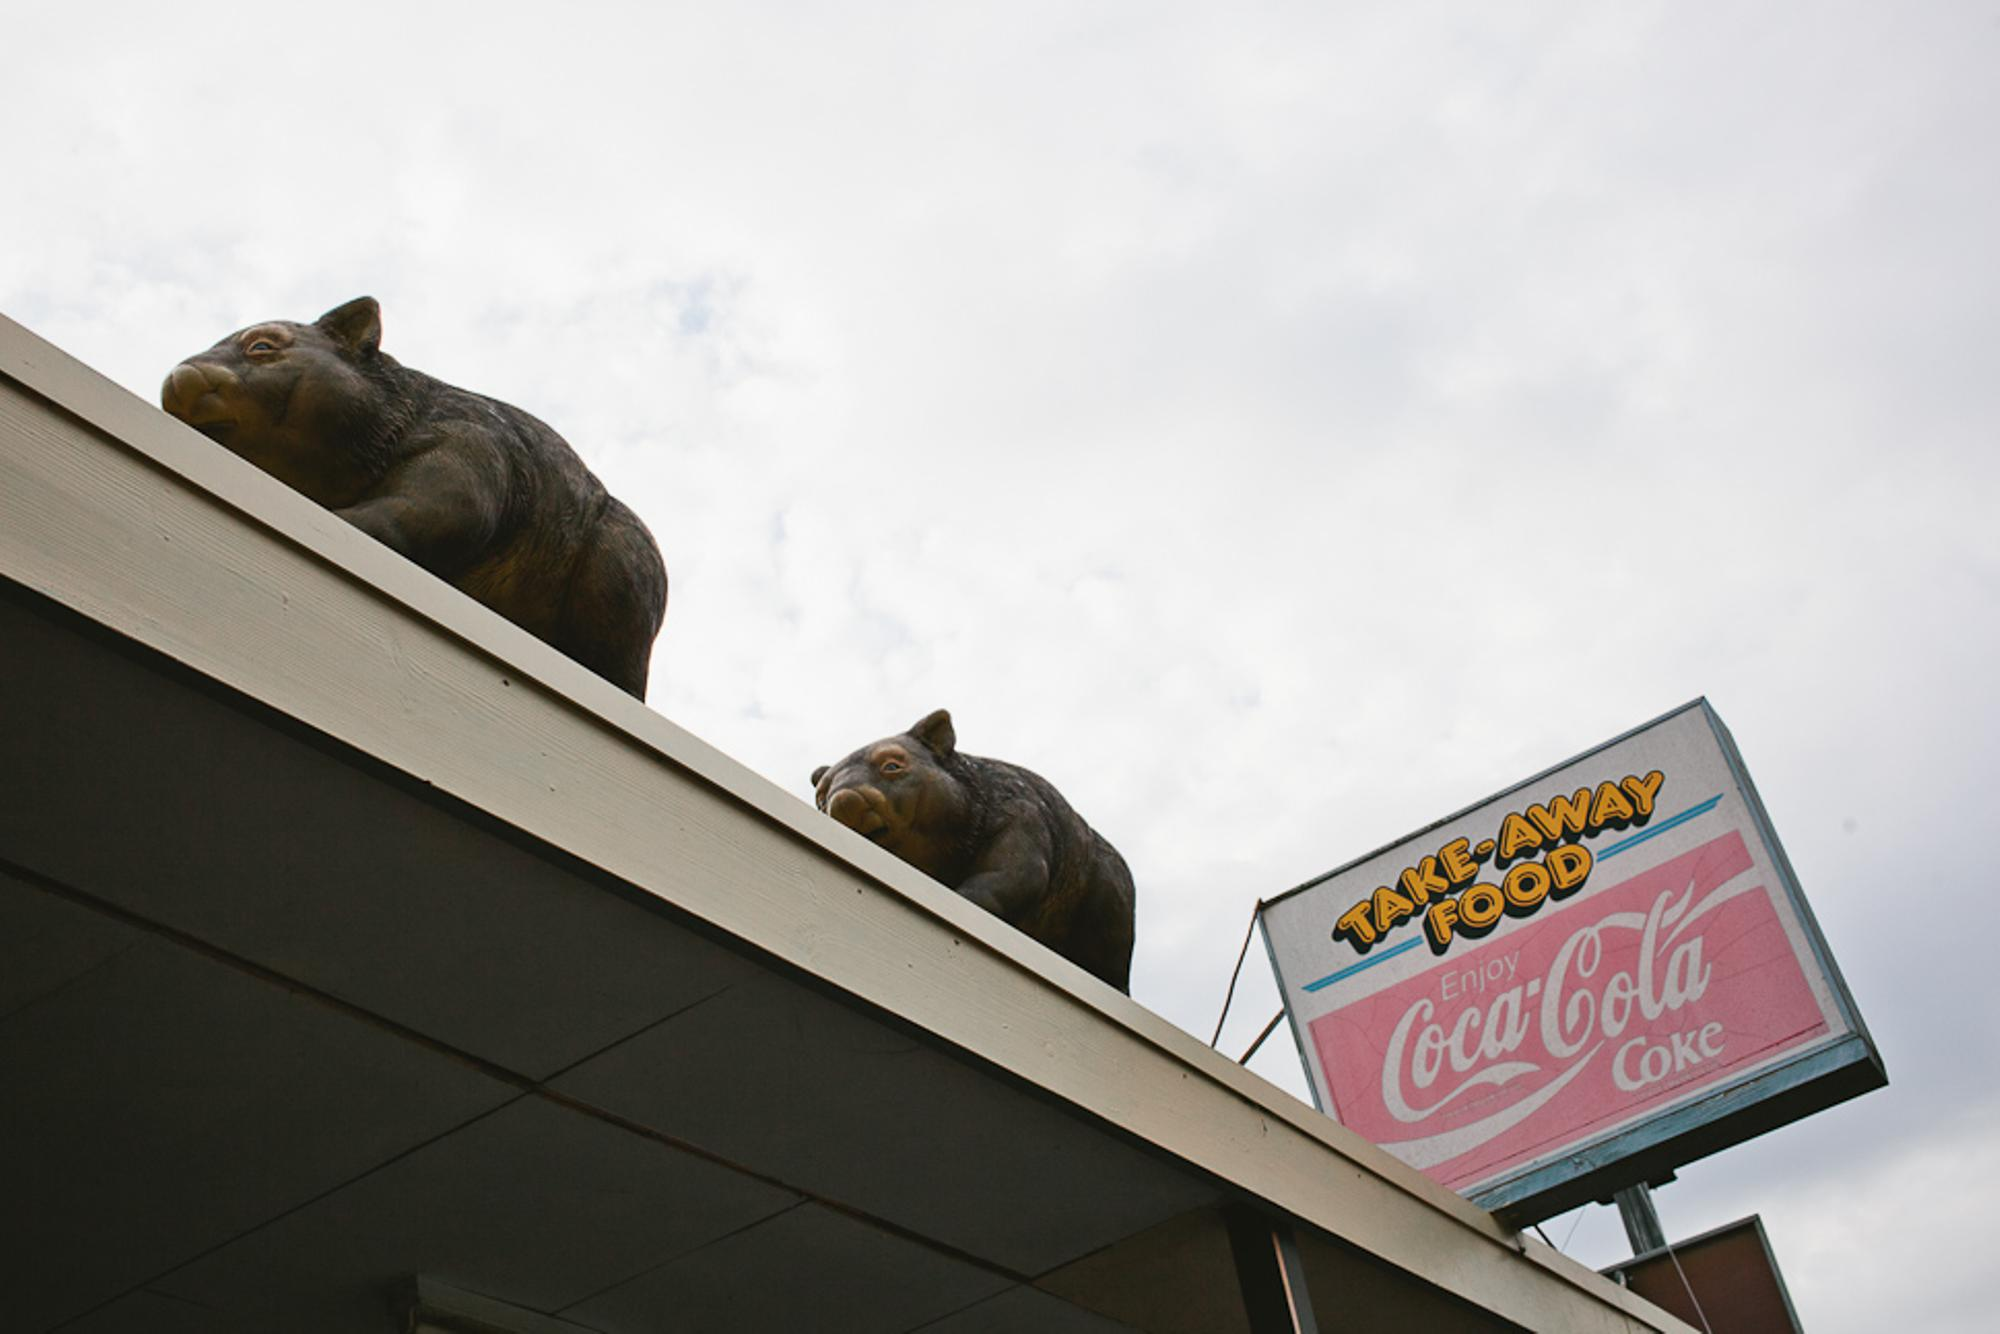 Mr. and Mrs. Wombat